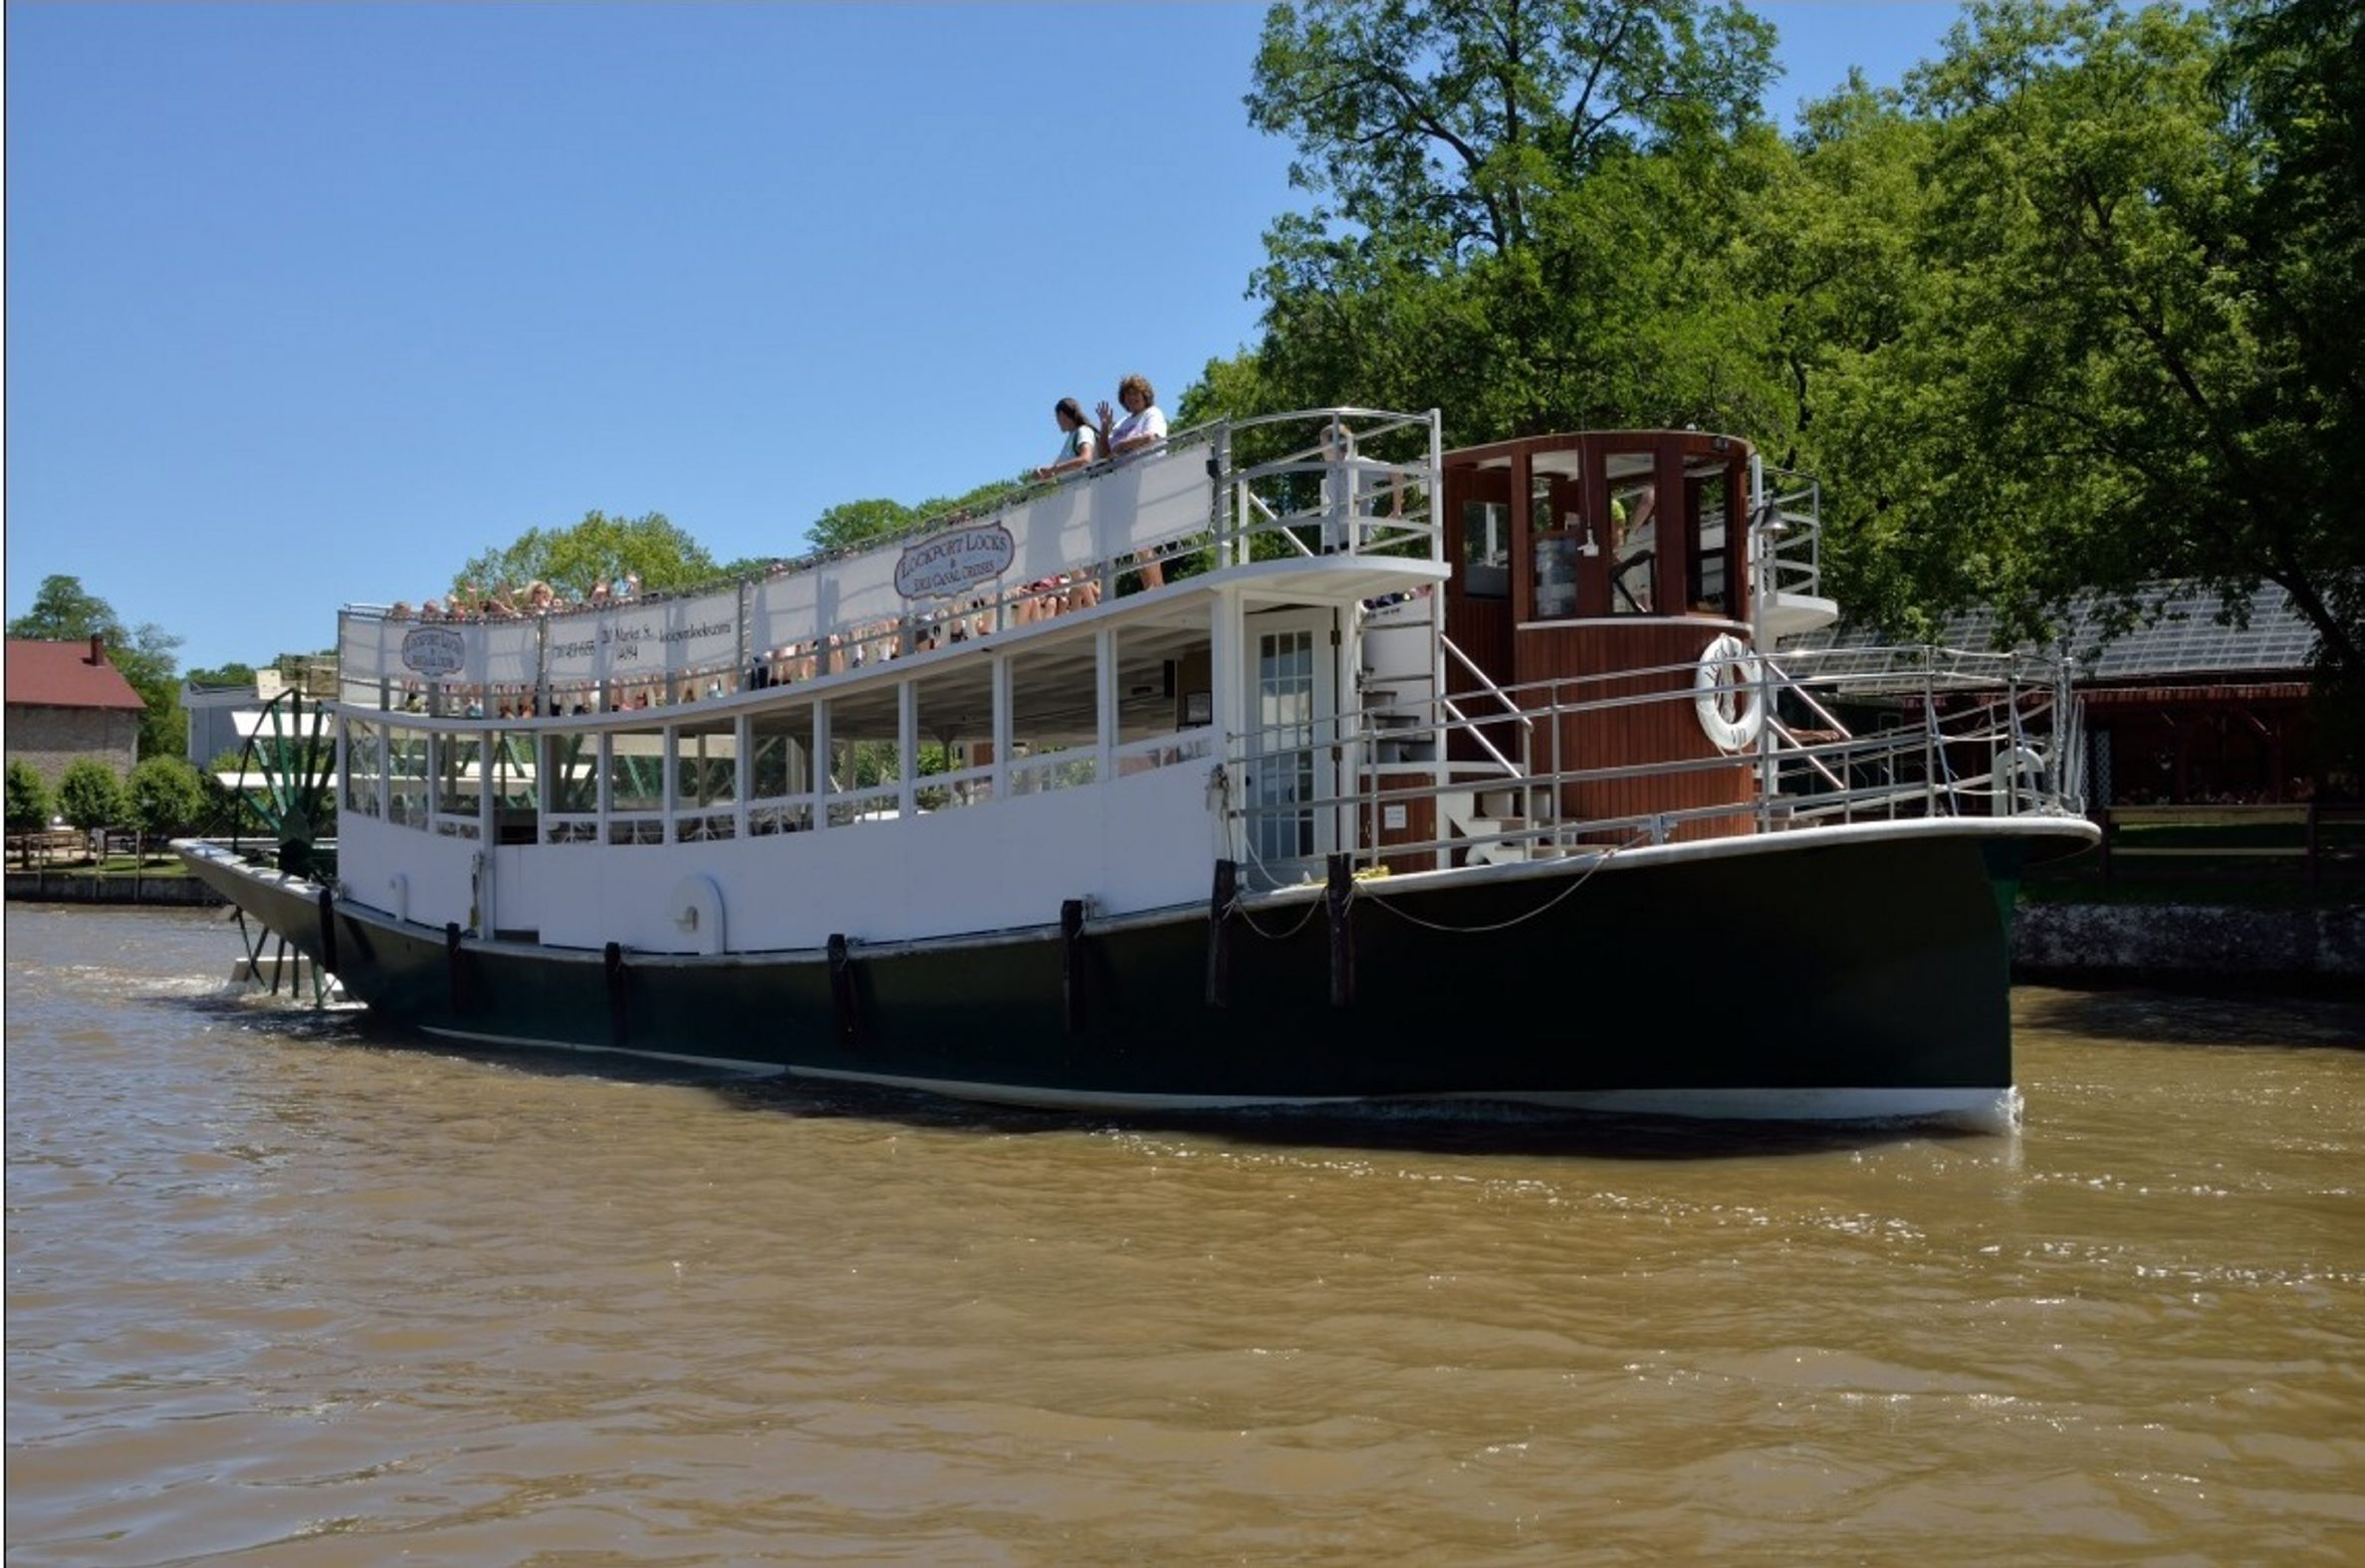 The Lockview VI is now offering rides through the Erie Canal locks. The 21-foot-wide and 75-foot-long craft holds up to 150 passengers.